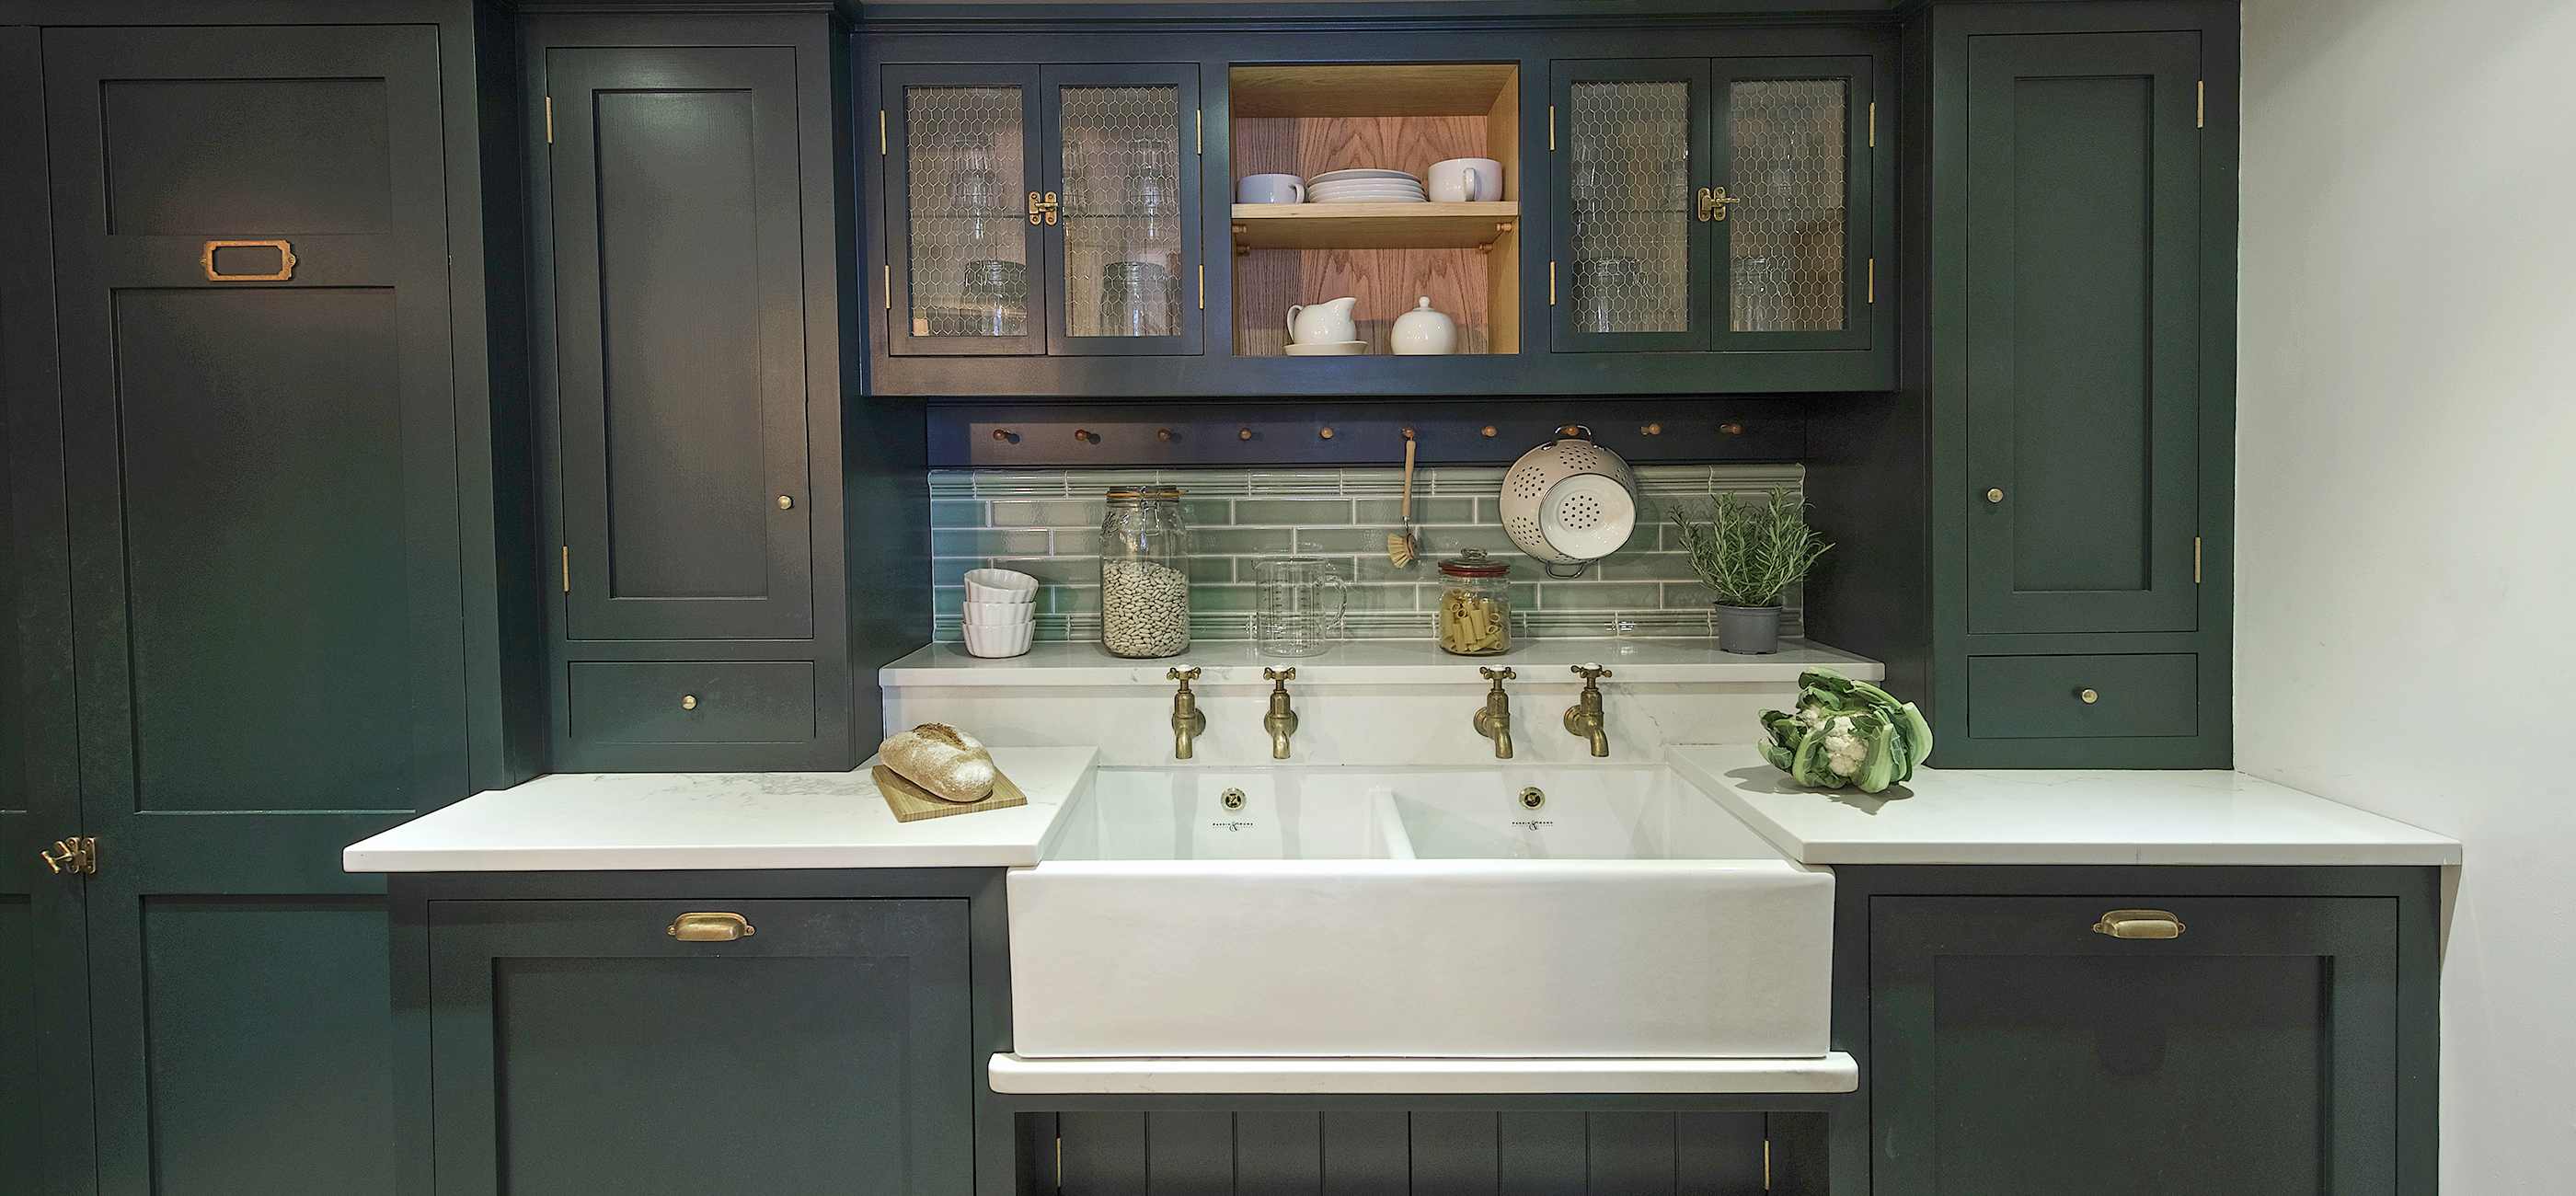 Shaker kitchen units with mesh front cabinets above and a large double sink with brass taps and green metro tile backsplash with white marble worktop.